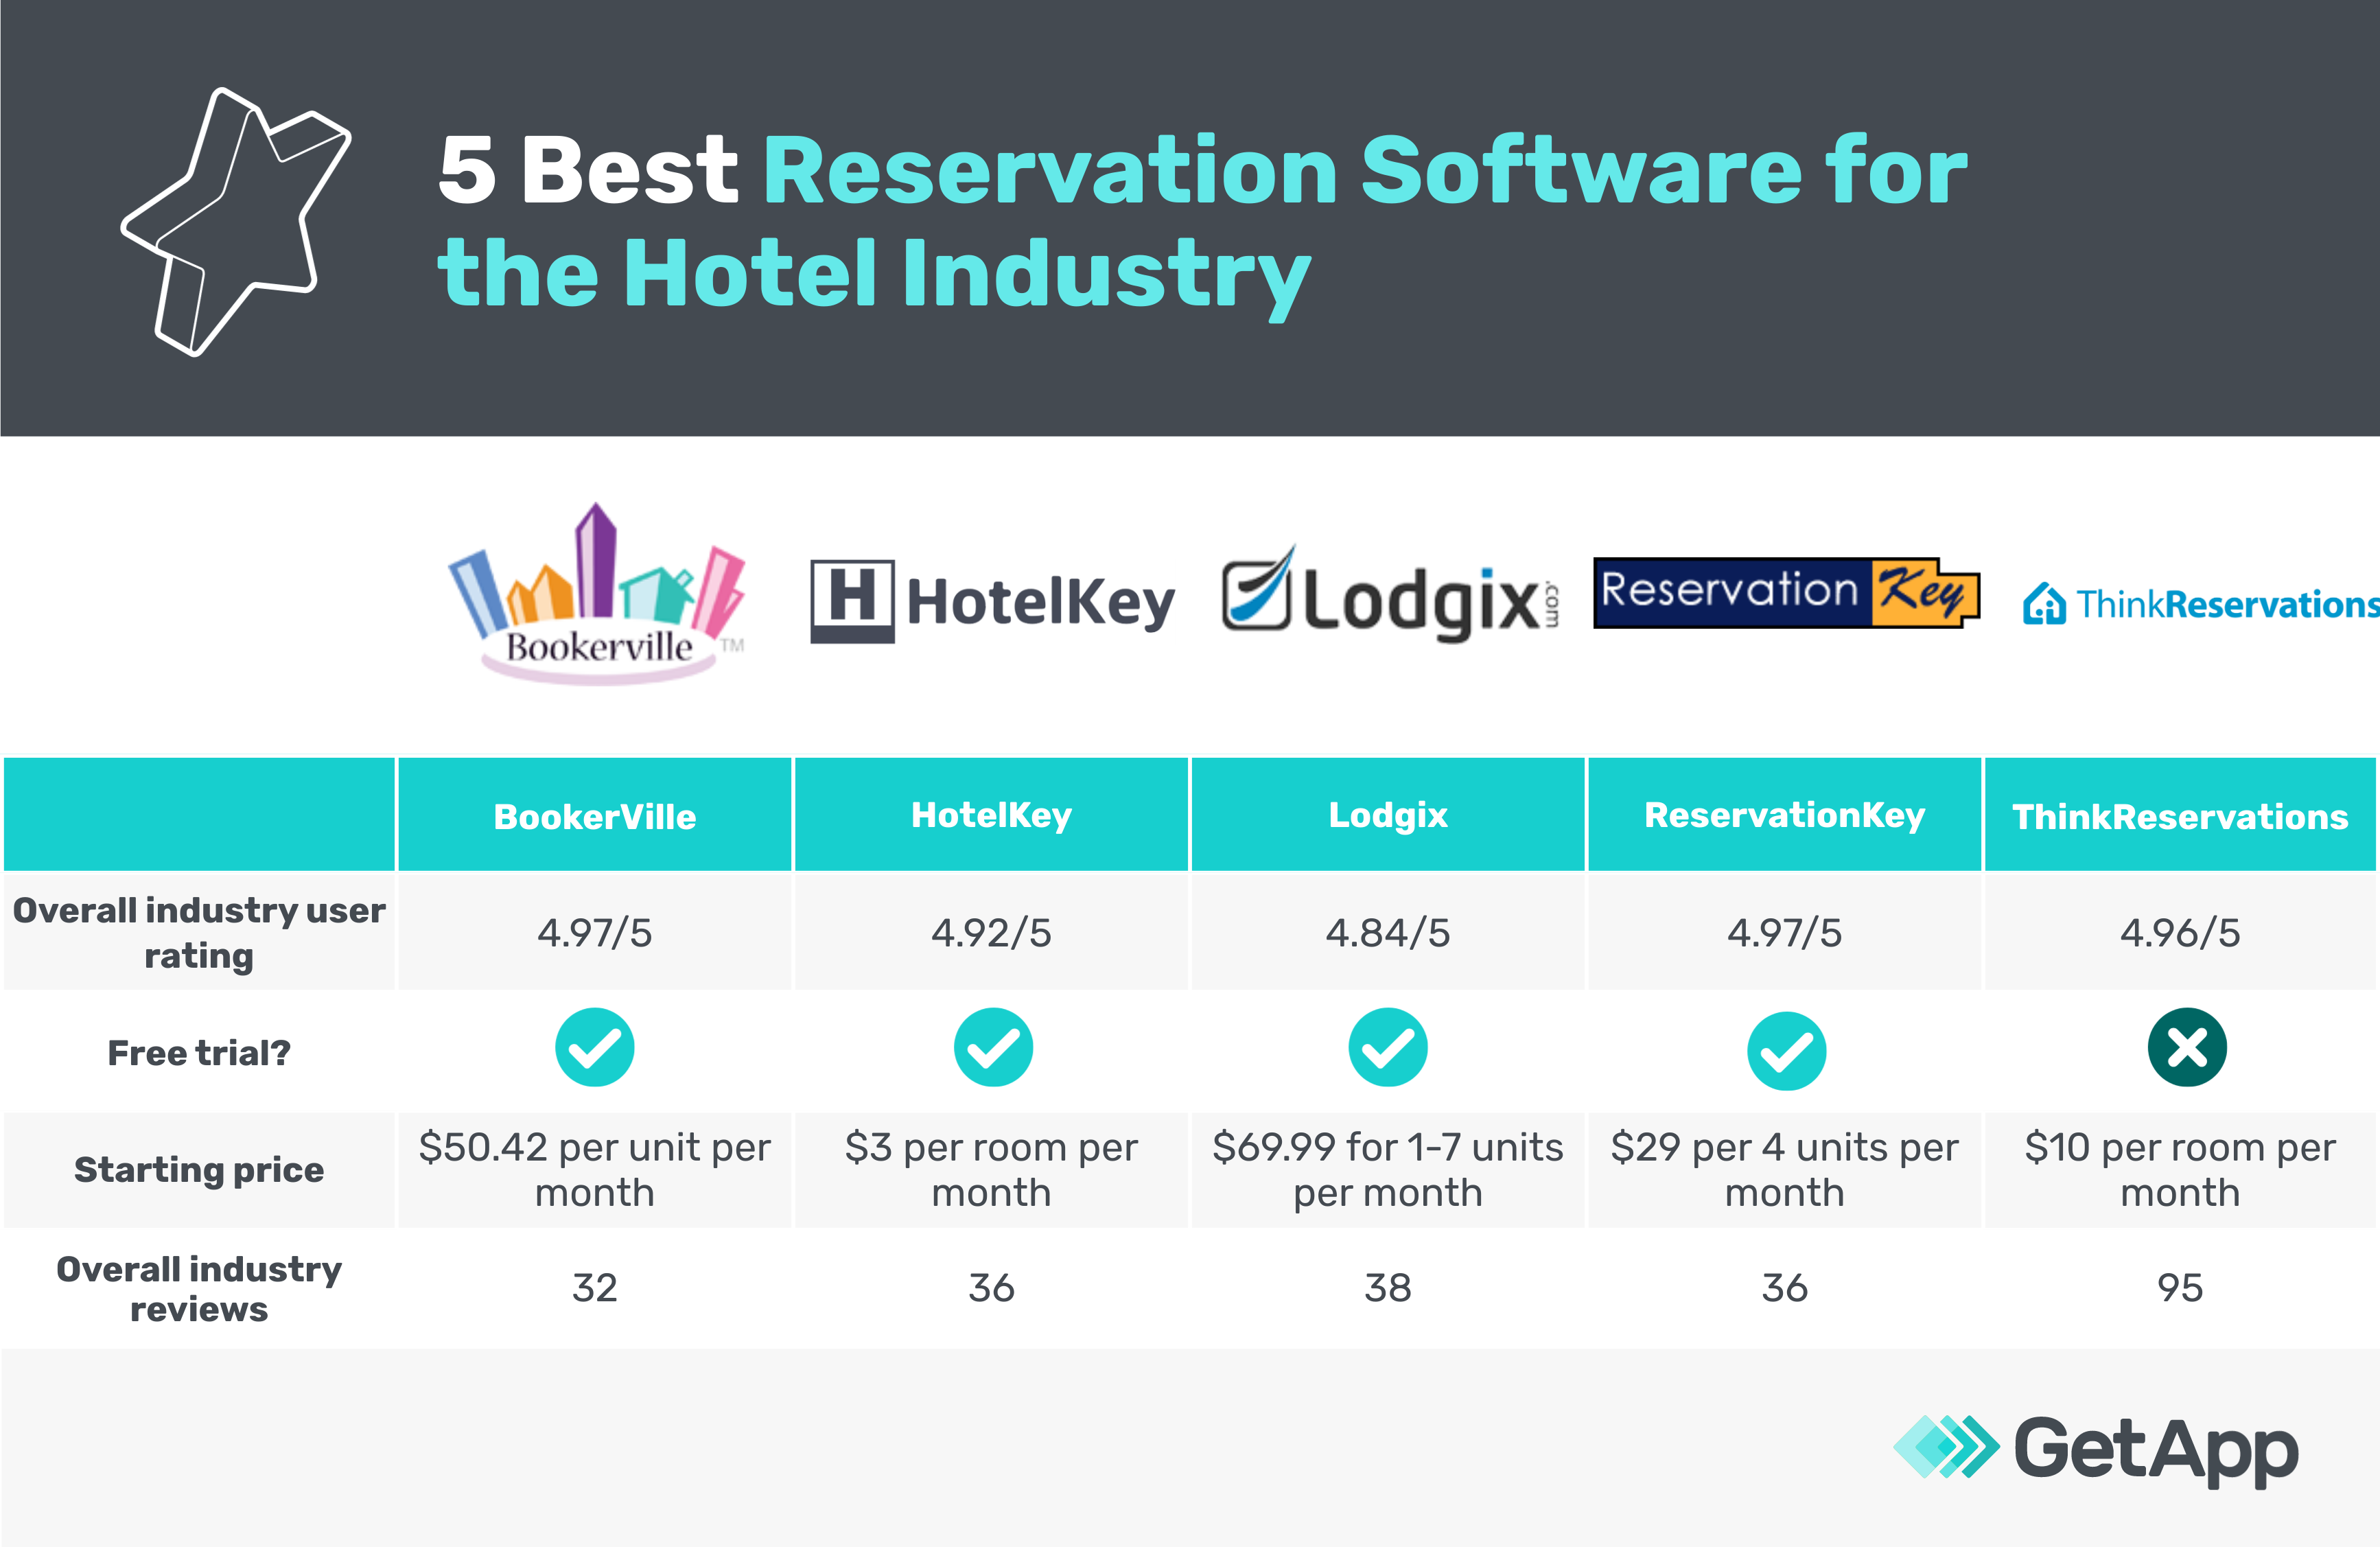 5 best reservation software for the hotel industry